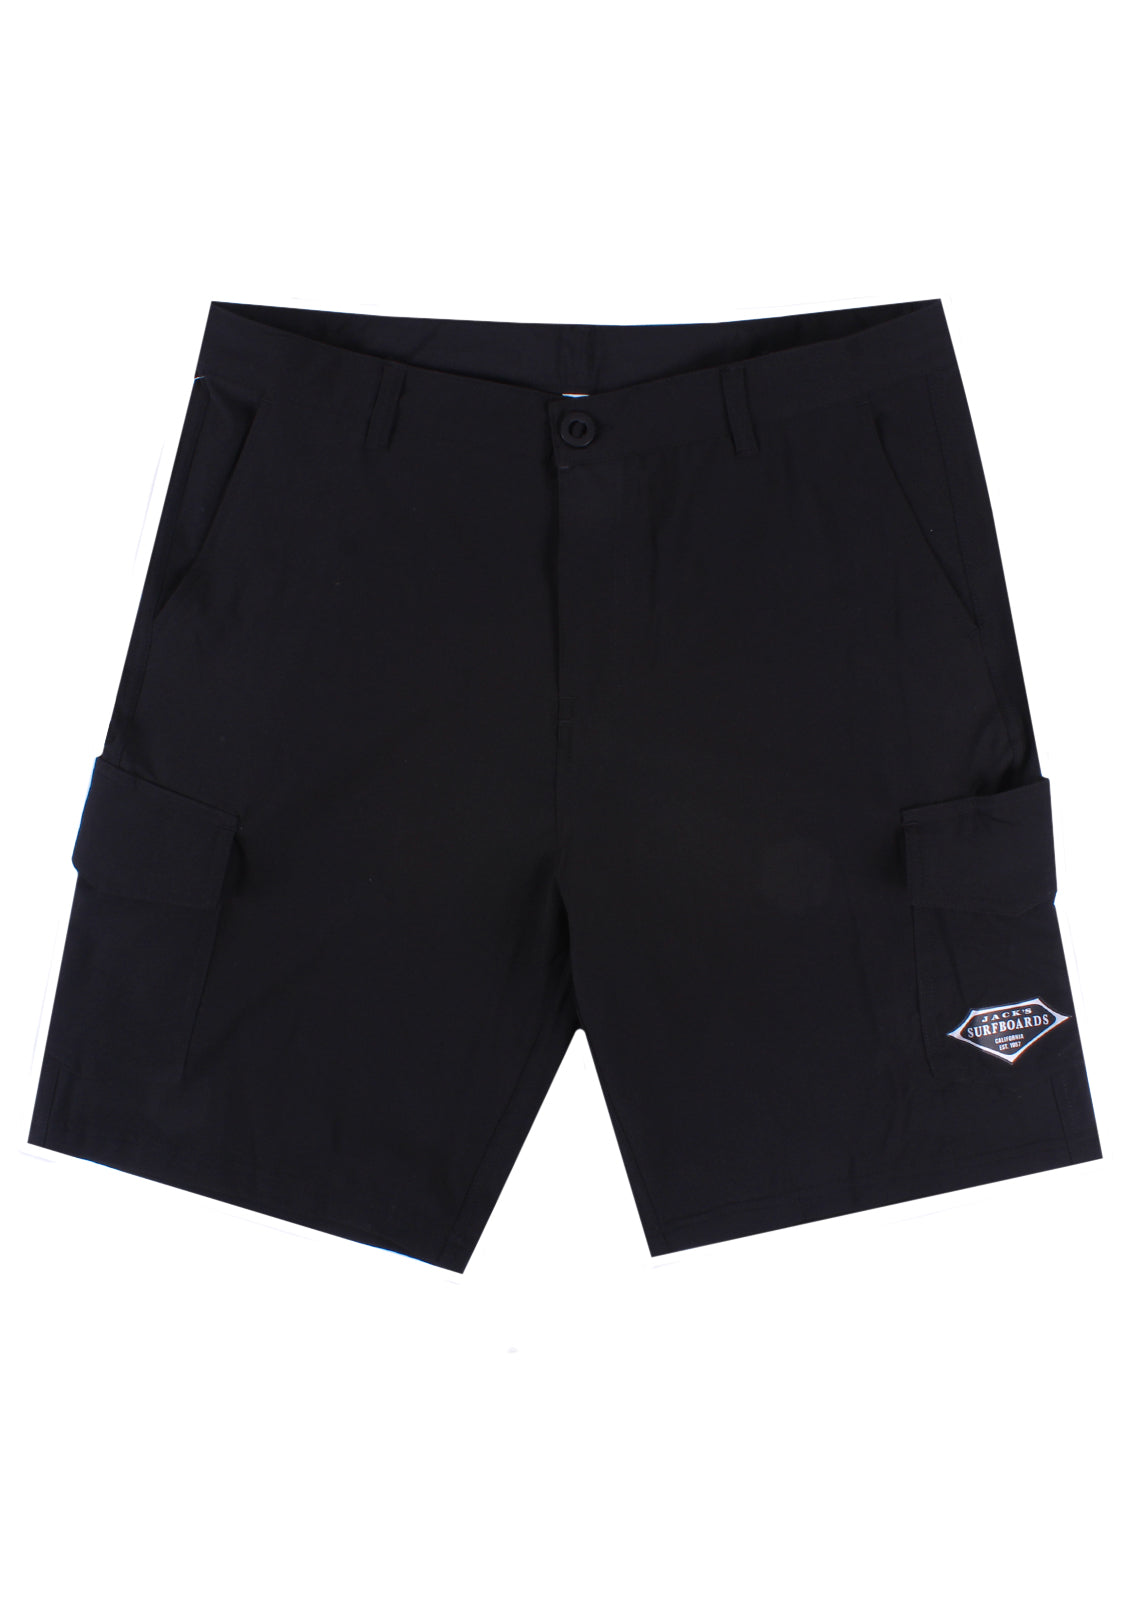 Jacks Surfboard Combat Boardshort